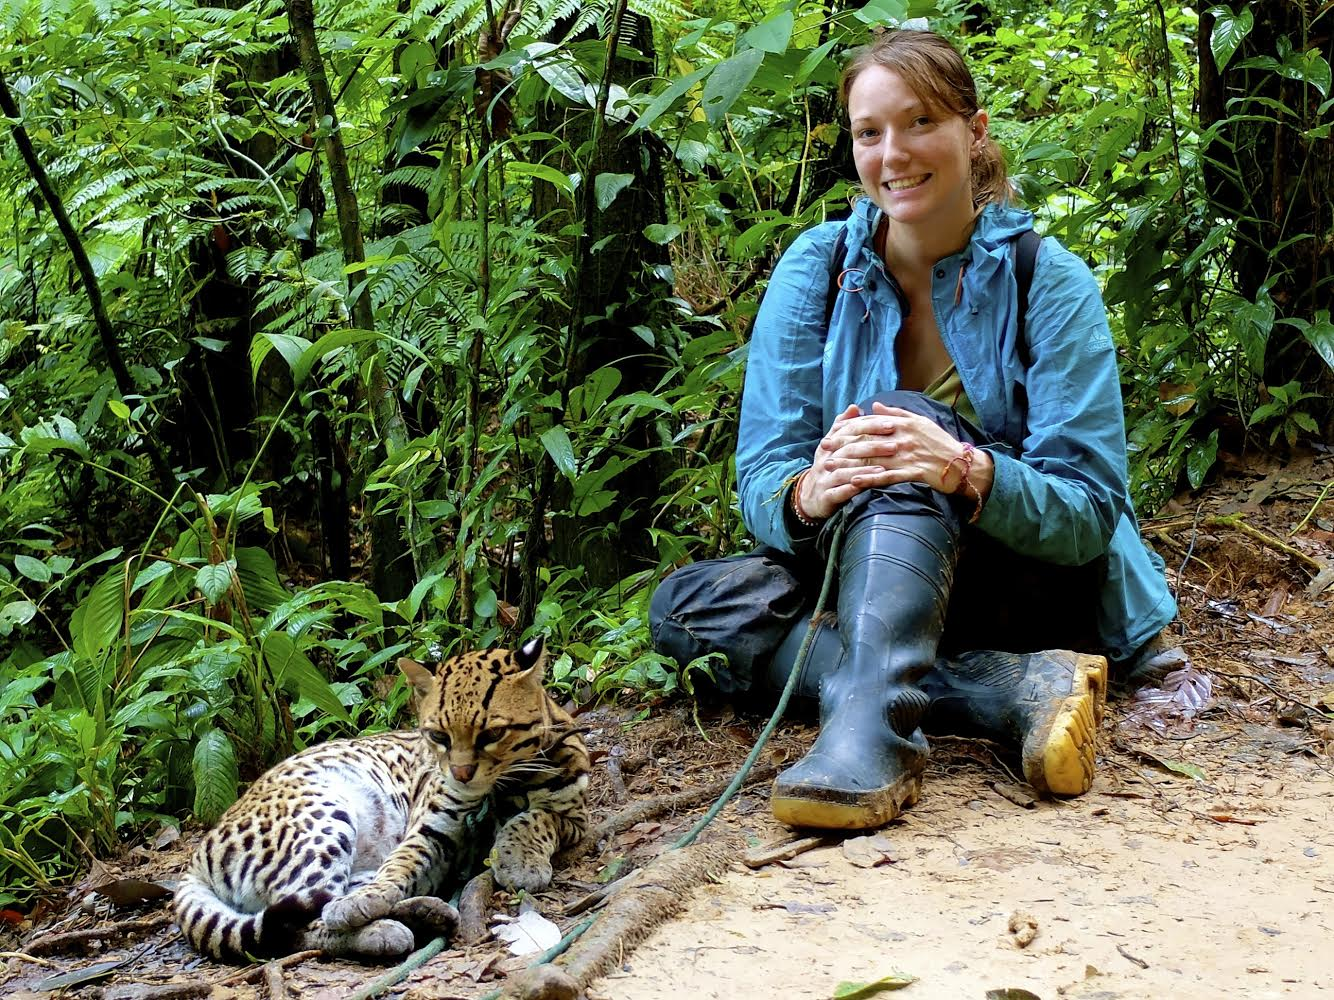 Chelsea relaxing with Tigre the Ocelot